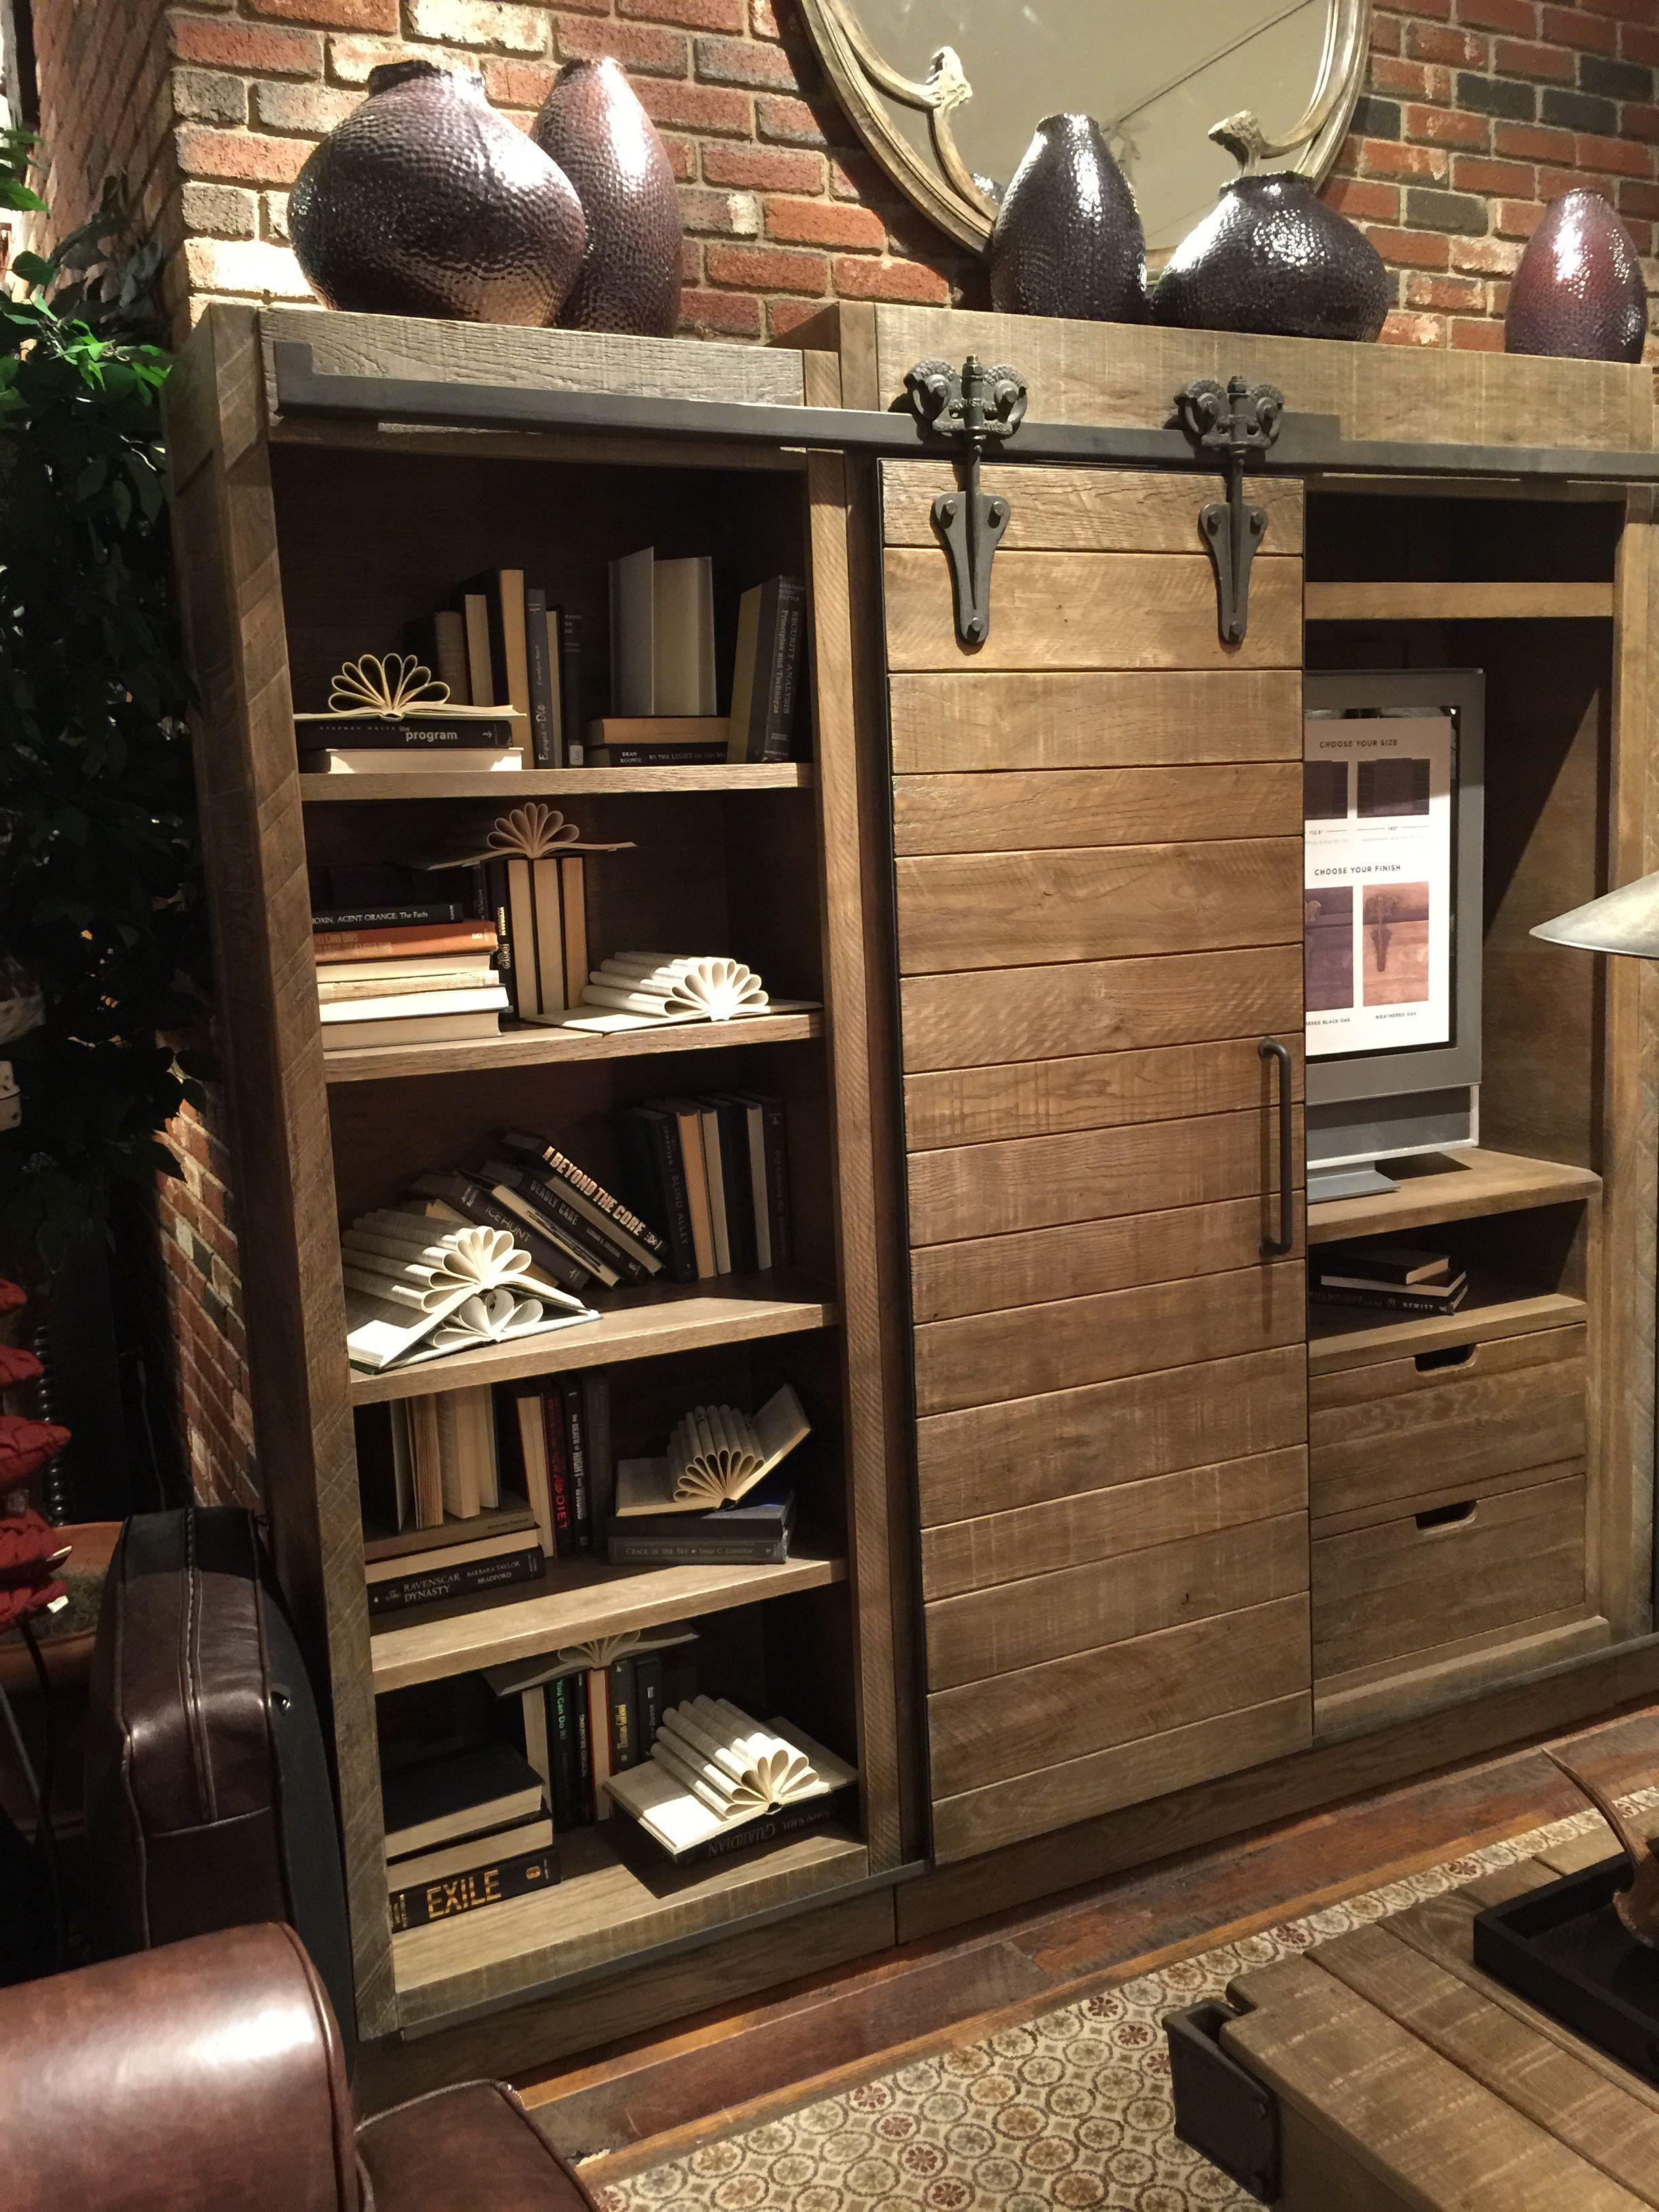 Where to buy barn doors in dallas - Arhaus Store Dallas Entertainment Center With Sliding Barn Doors